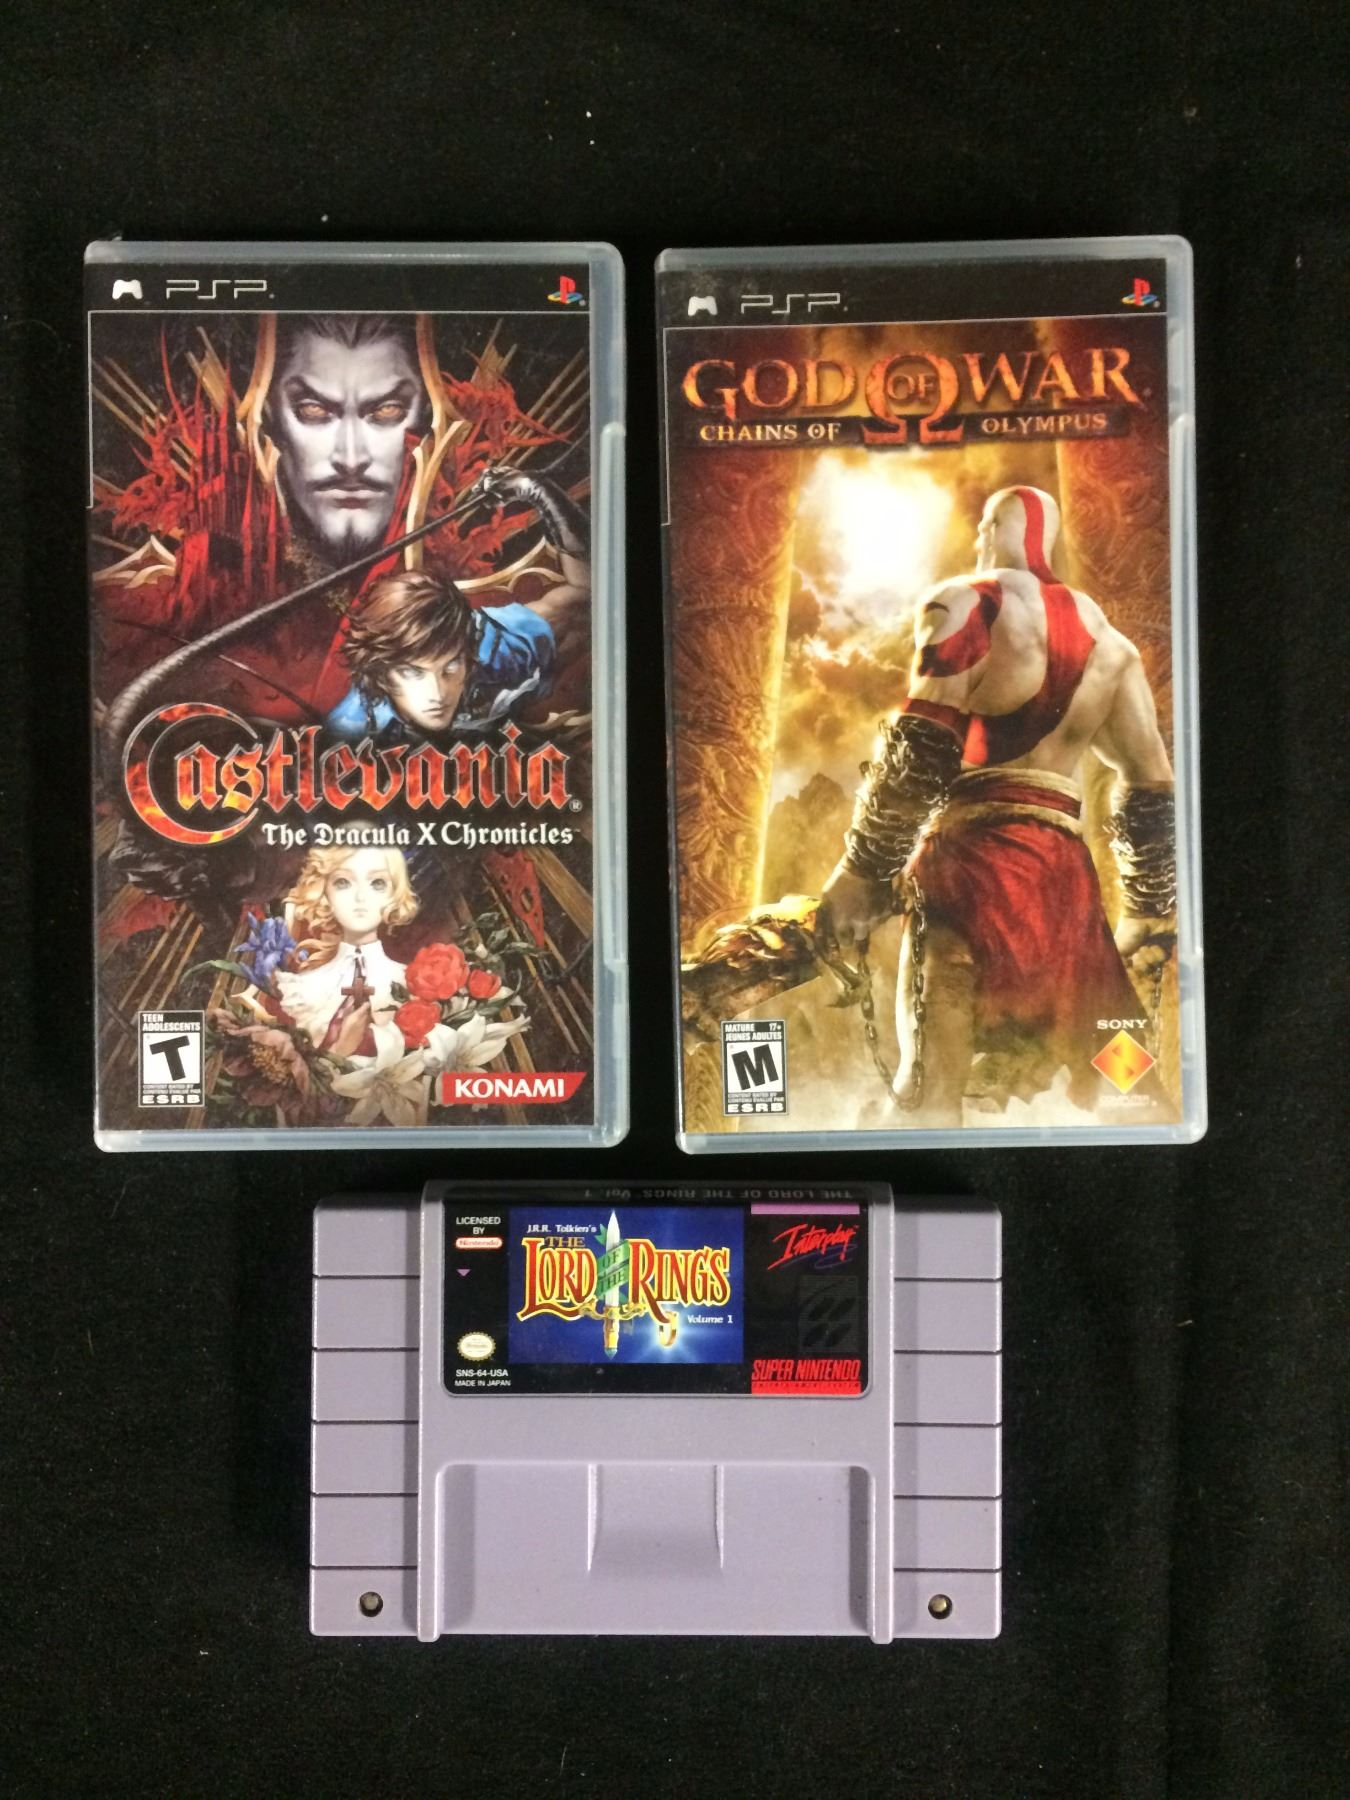 PSP & SUPER NINTENDO VIDEO GAME LOT (CASTLEVANIA, GOD OF WAR, LORD OF THE  RINGS)